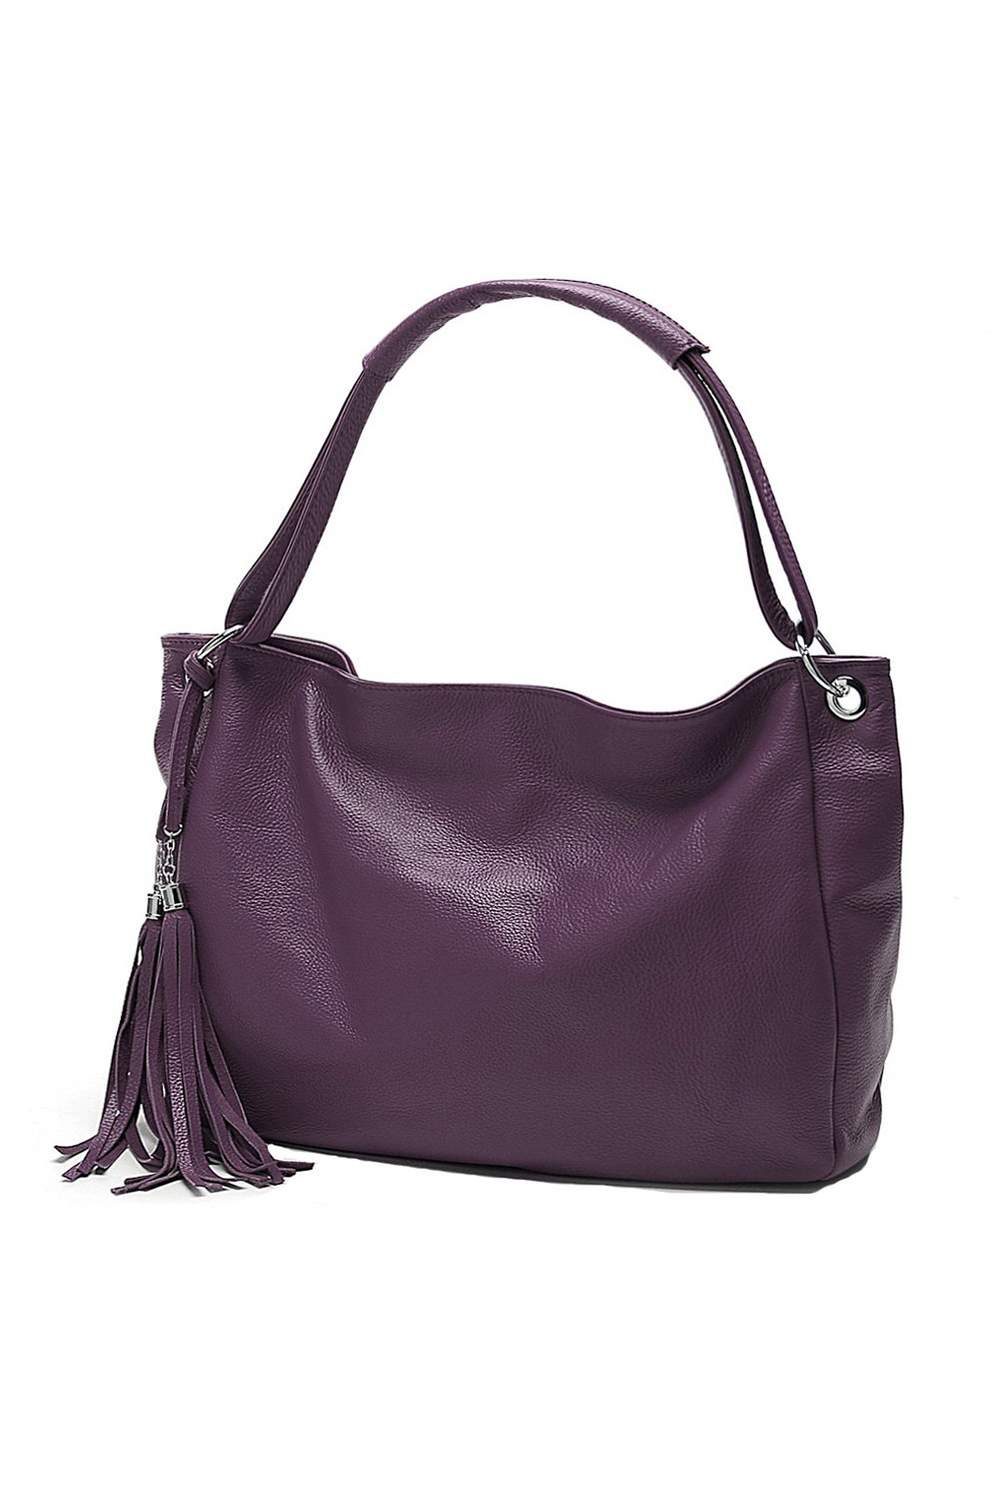 5Pcs Wholesale Women Handbag PU Leather Zipper Closure Tassel Crossbody Shoulder Bag Purple